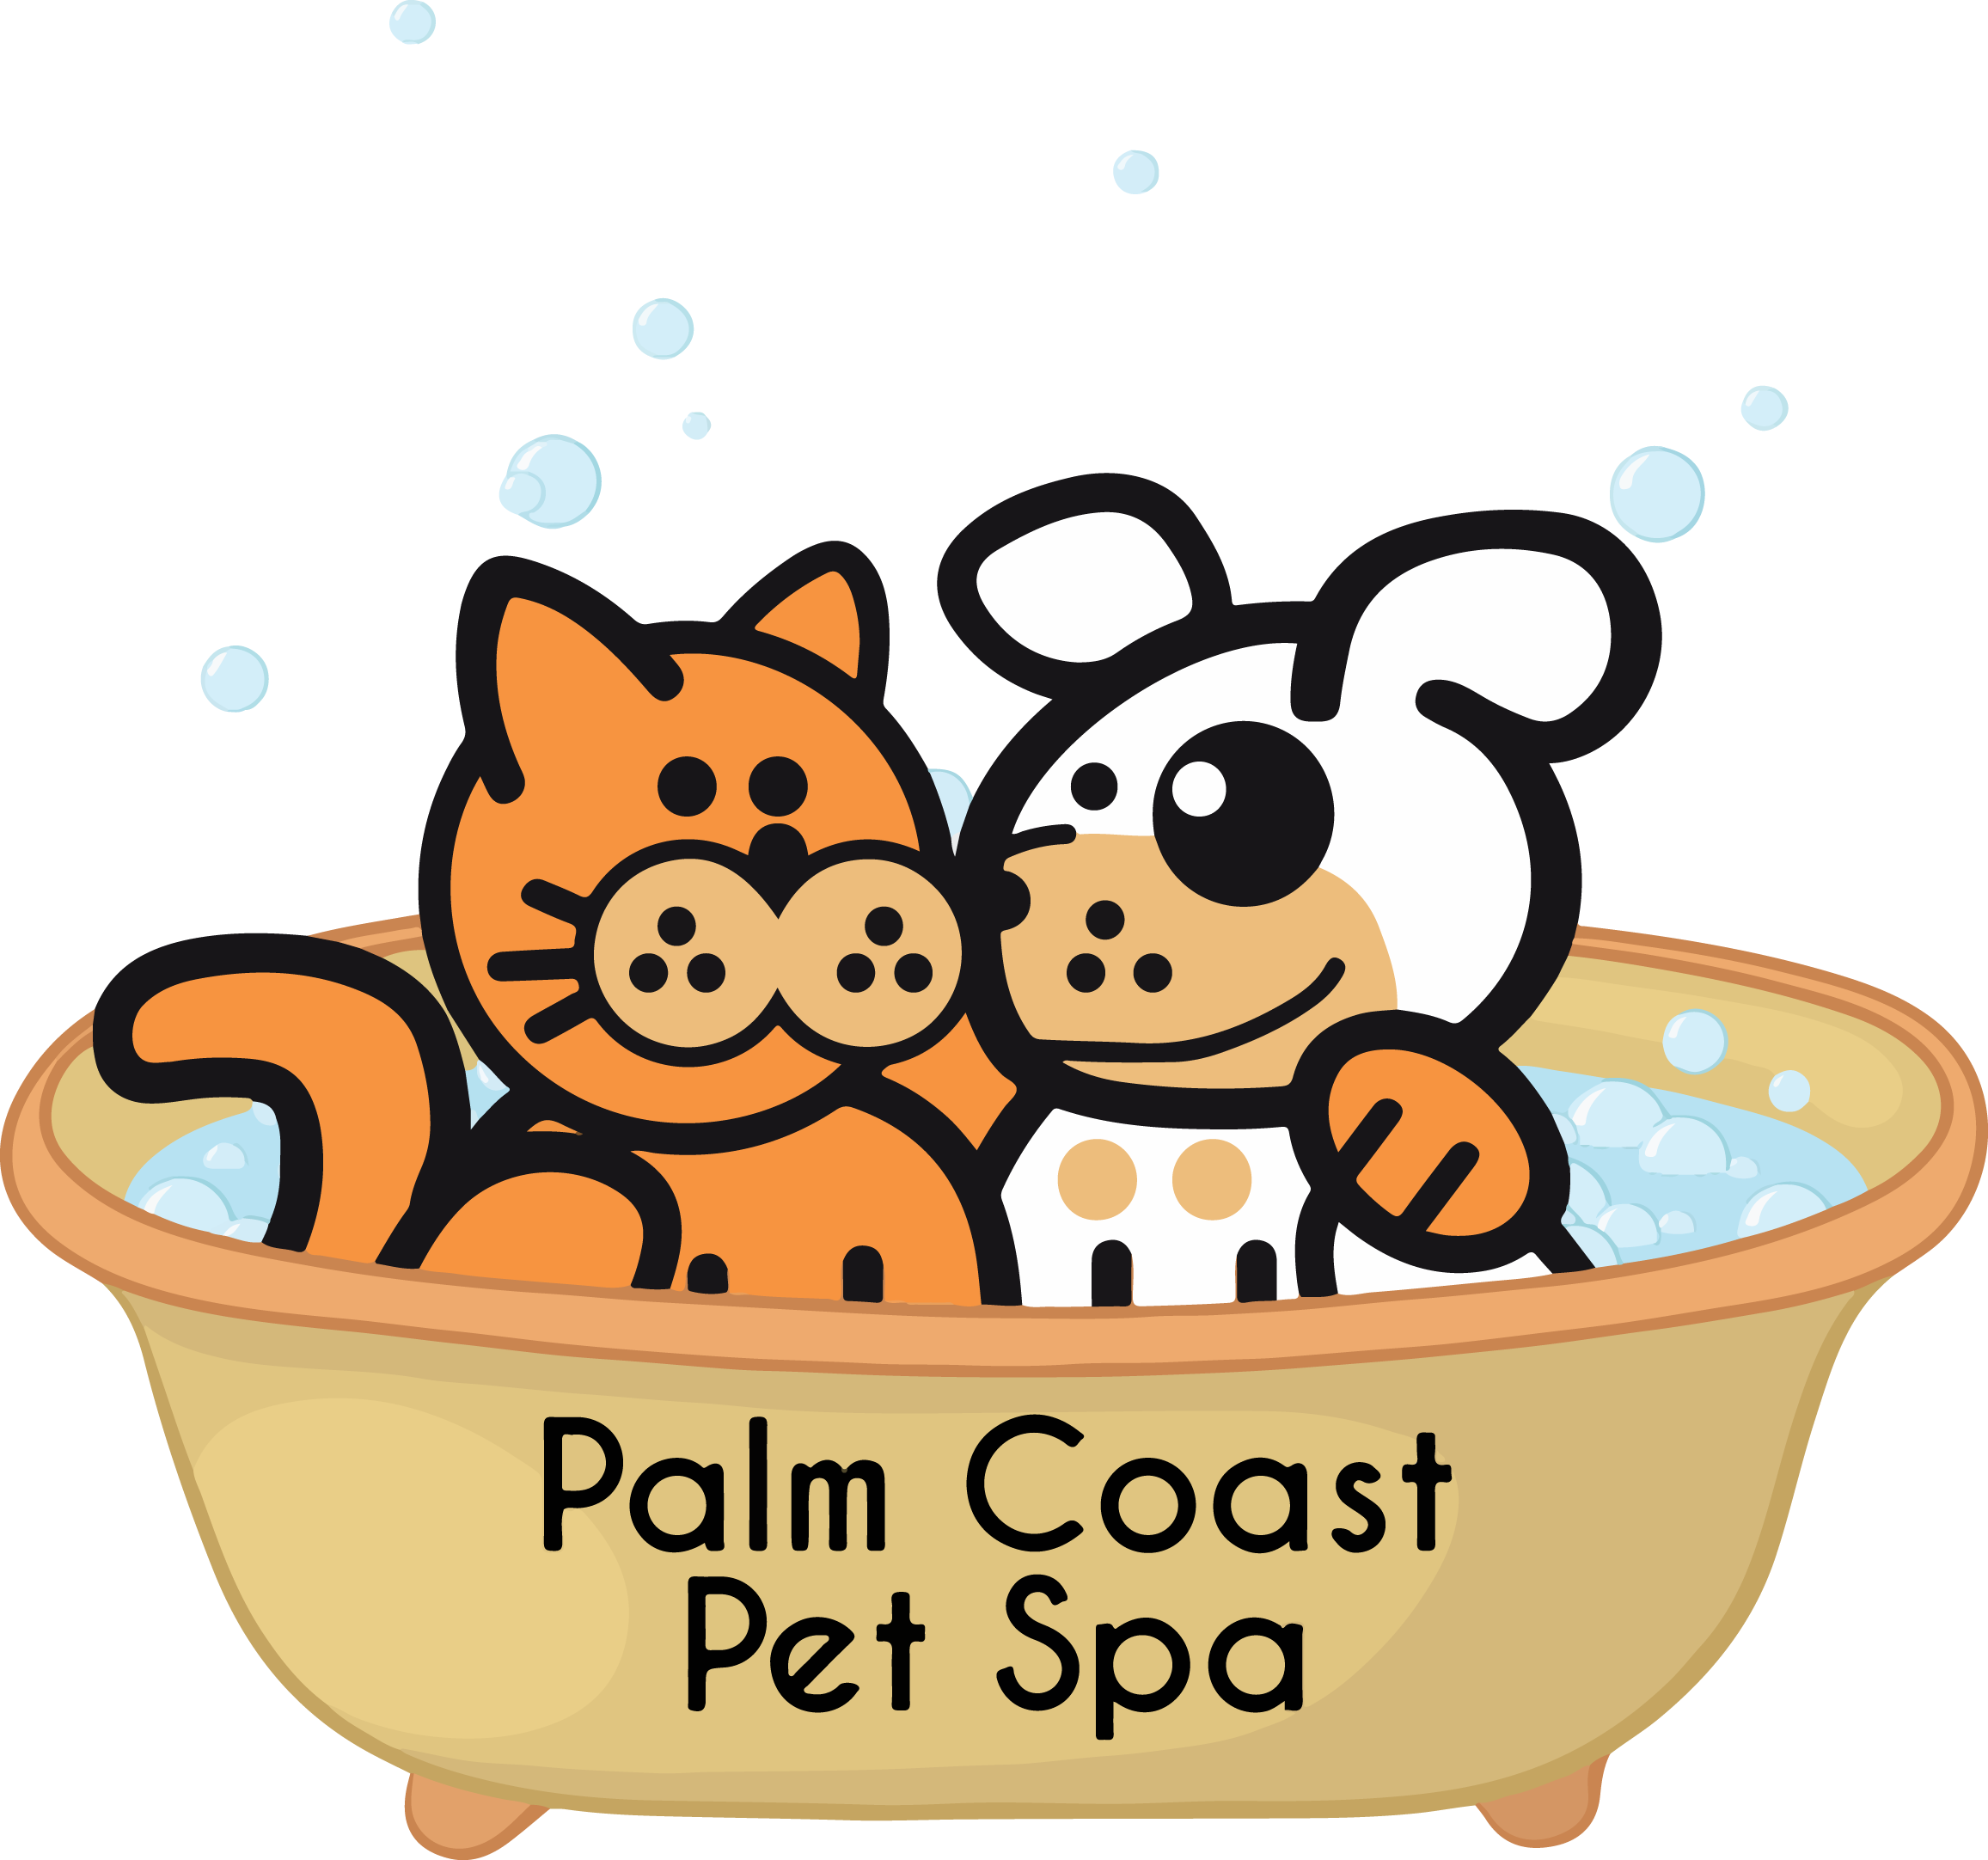 Palm coast pet spa. Schedule clipart hectic